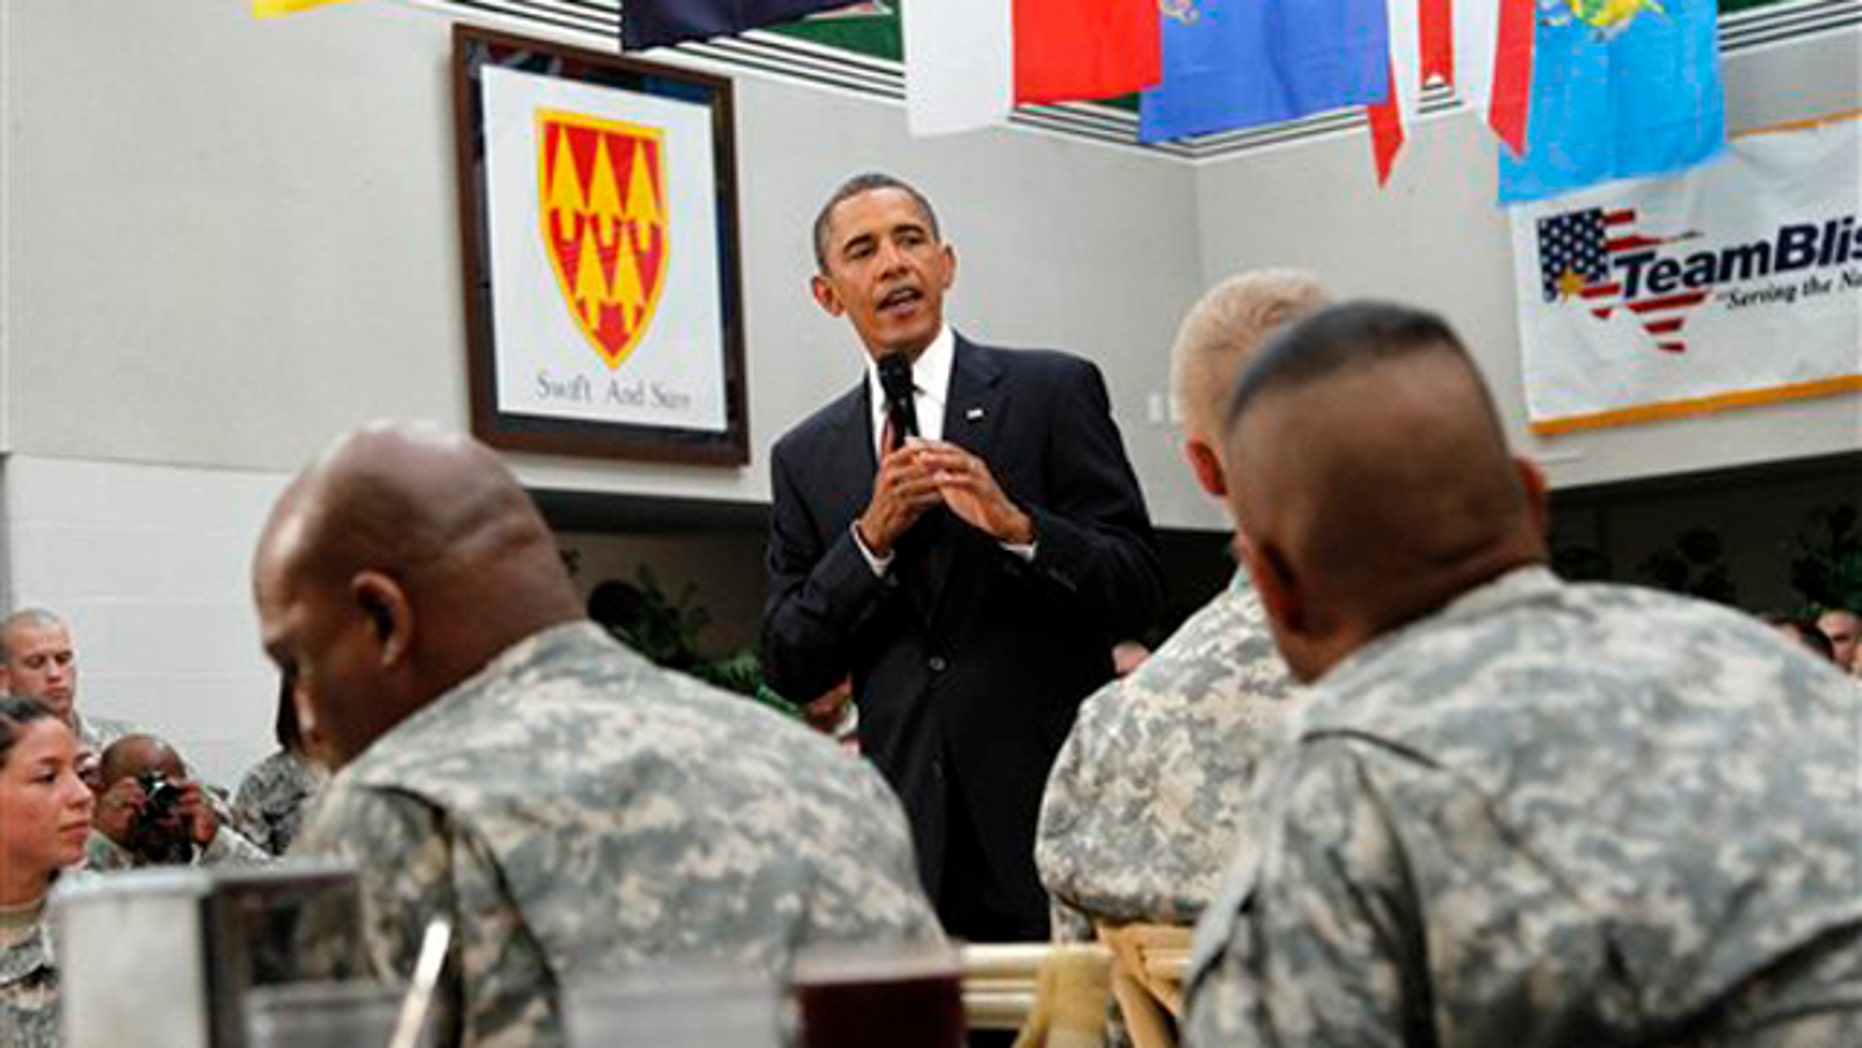 President Obama speaks to members of the military Aug. 31 at Fort Bliss in El Paso, Texas. (AP Photo)